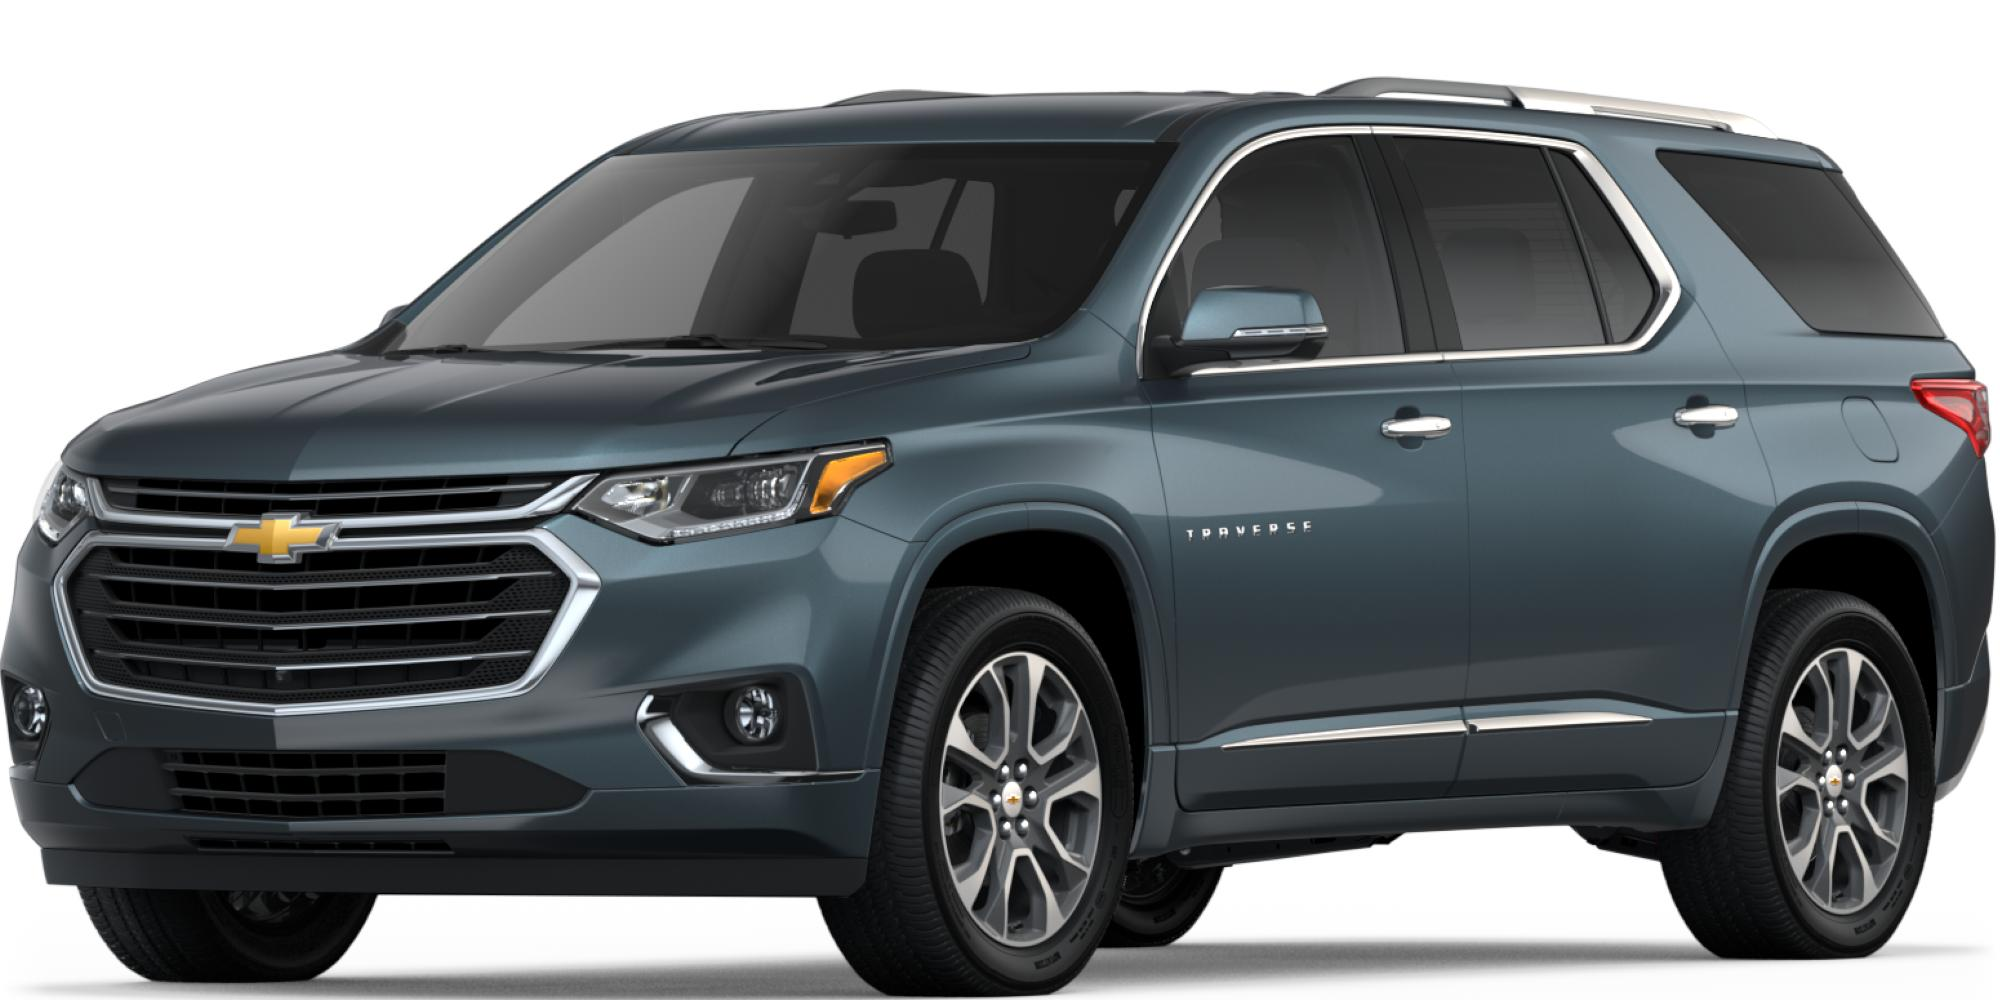 Watch further New Chevy Blazer Ditches Rugged Suv Roots For Modern Design together with 2019 Chevy Trailblazer Engine Performance besides 2018 Nissan Versa Sedan Priced 12875 moreover 2018 Honda Pilot. on chevy traverse